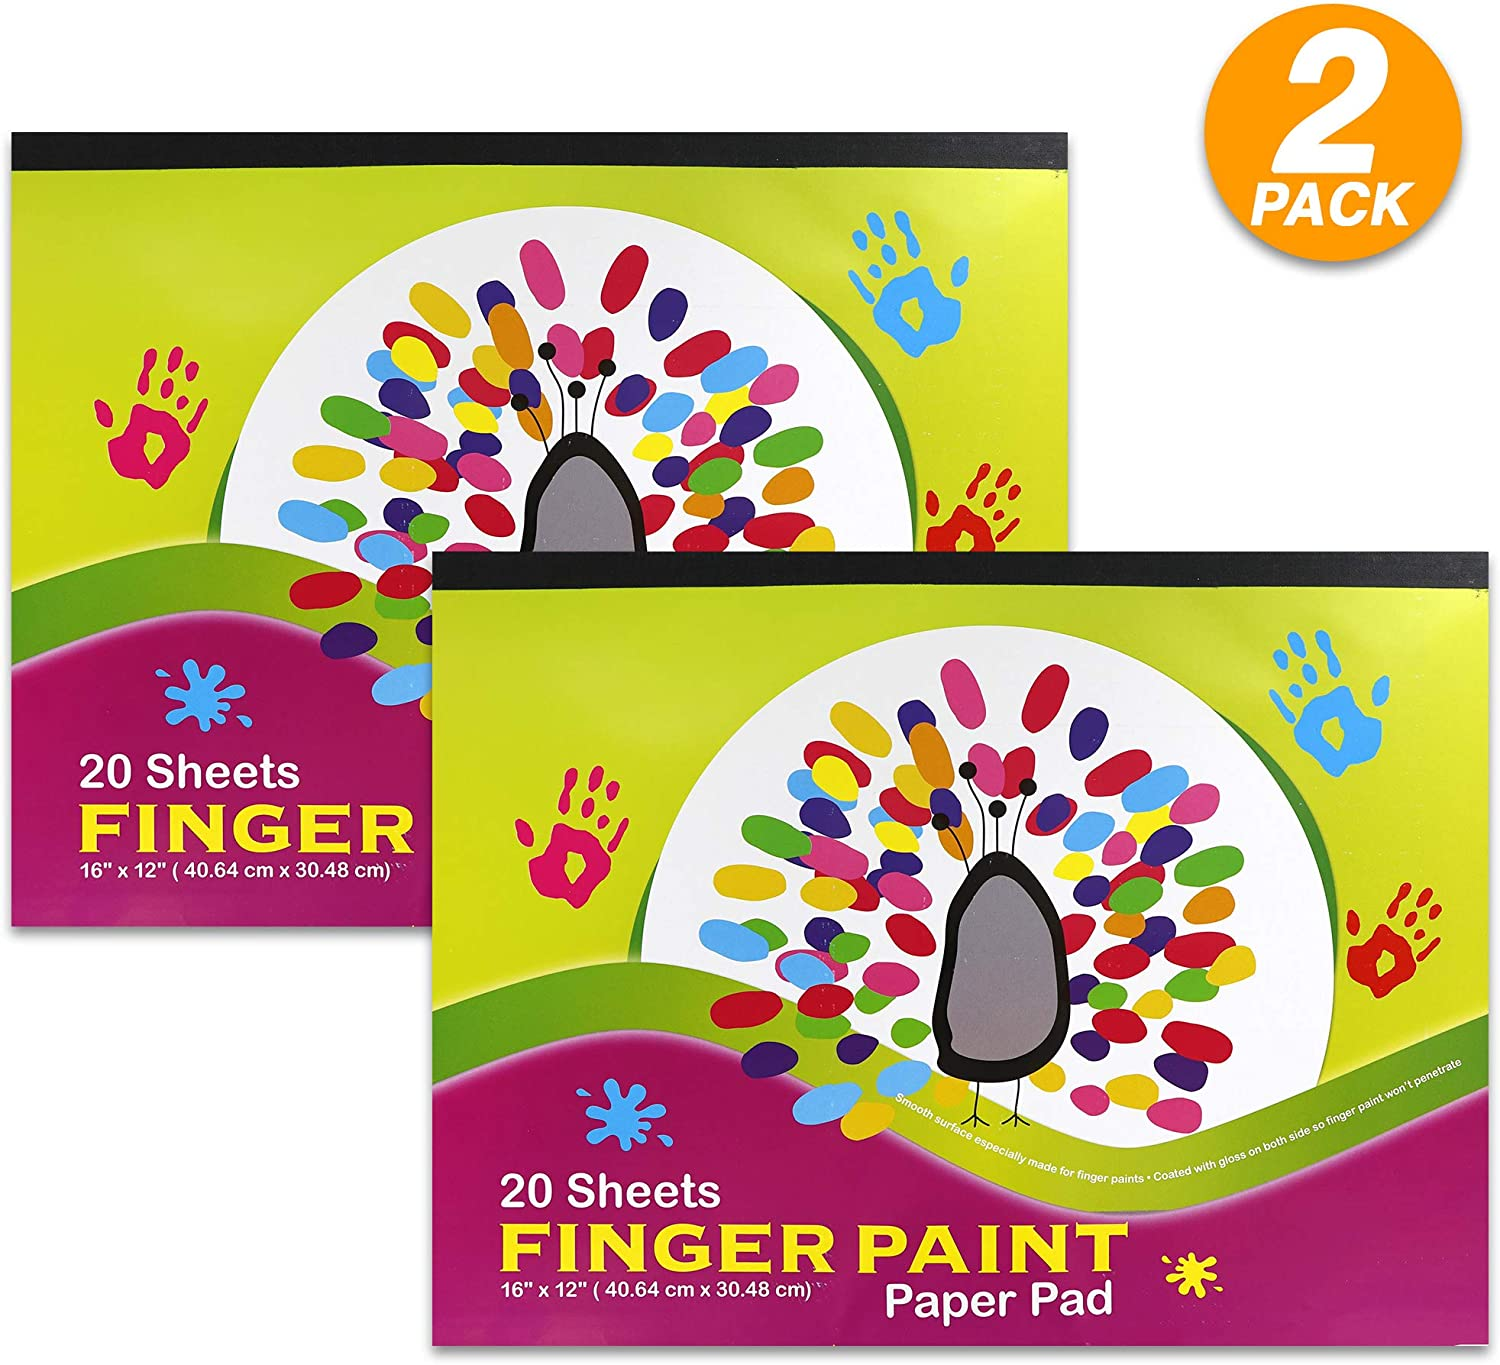 "Emraw 16"" X 12"" Finger Paint Paper Pad Non Absorbent Smooth Surface Perfect for Finger Paints Perfect for Kids Toddler Children - 20 Per Pack (Pack of 2)"